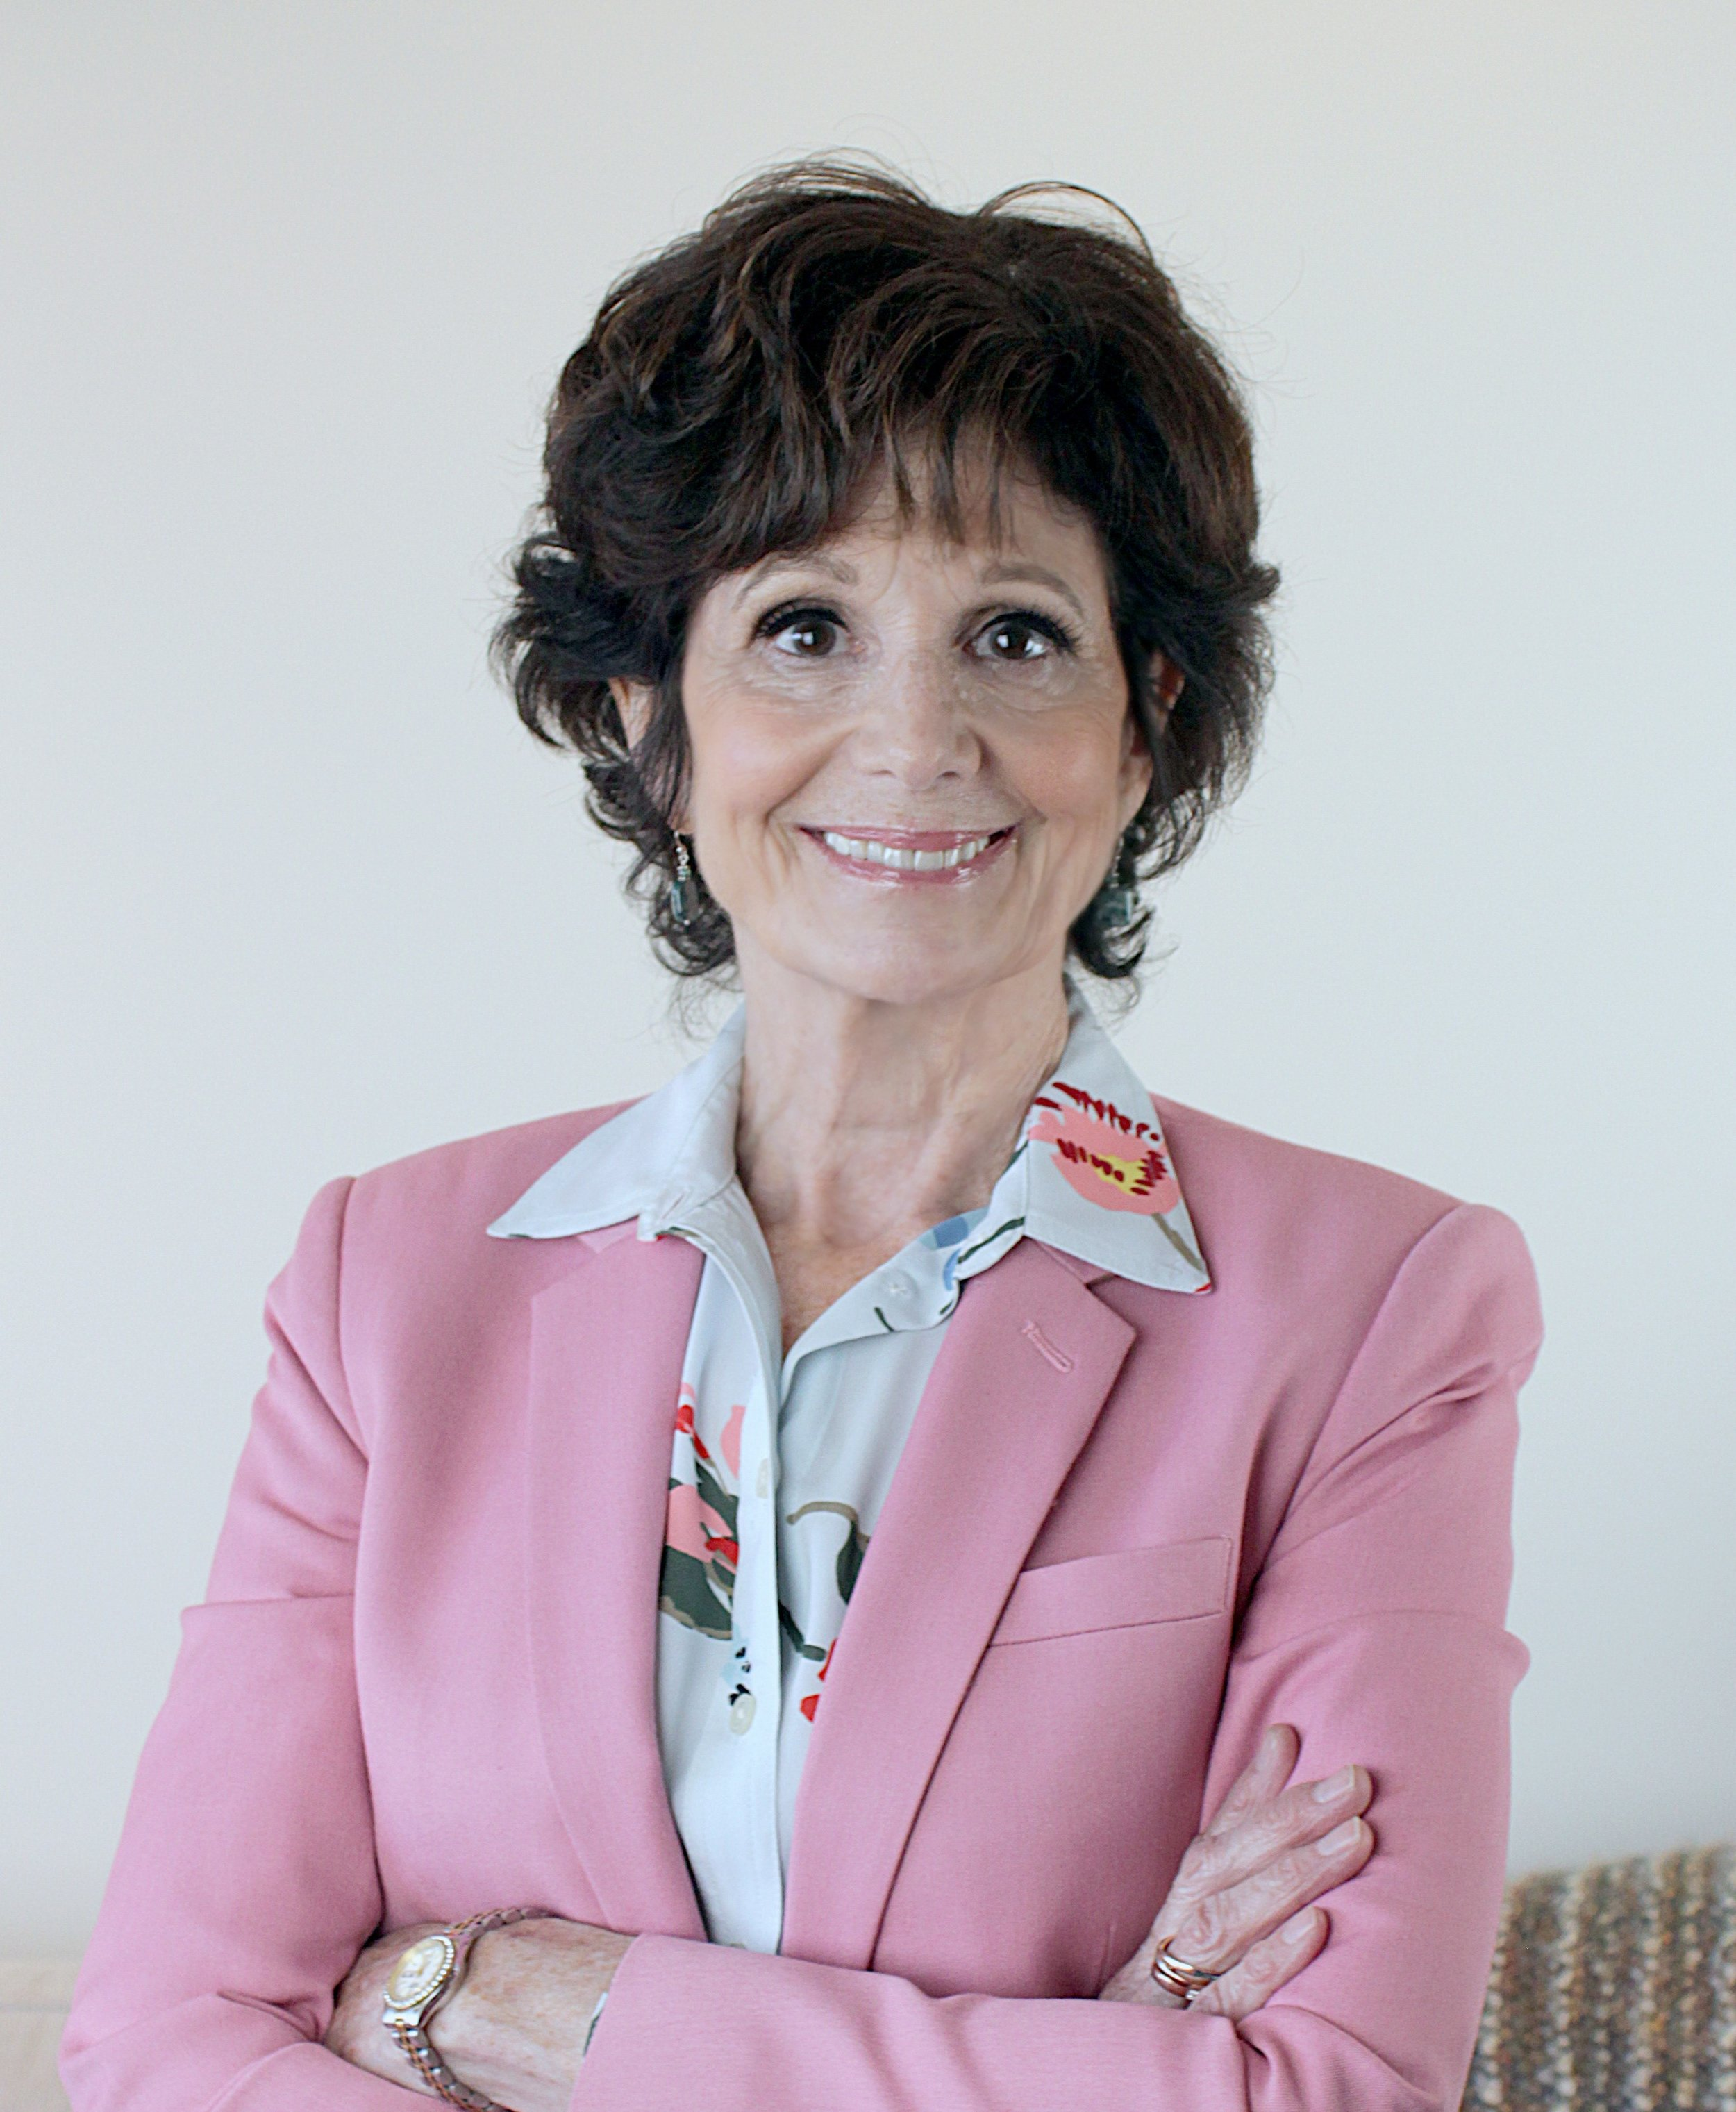 Dr. Sue Mandel - Founder, Dr. Sue's Connections